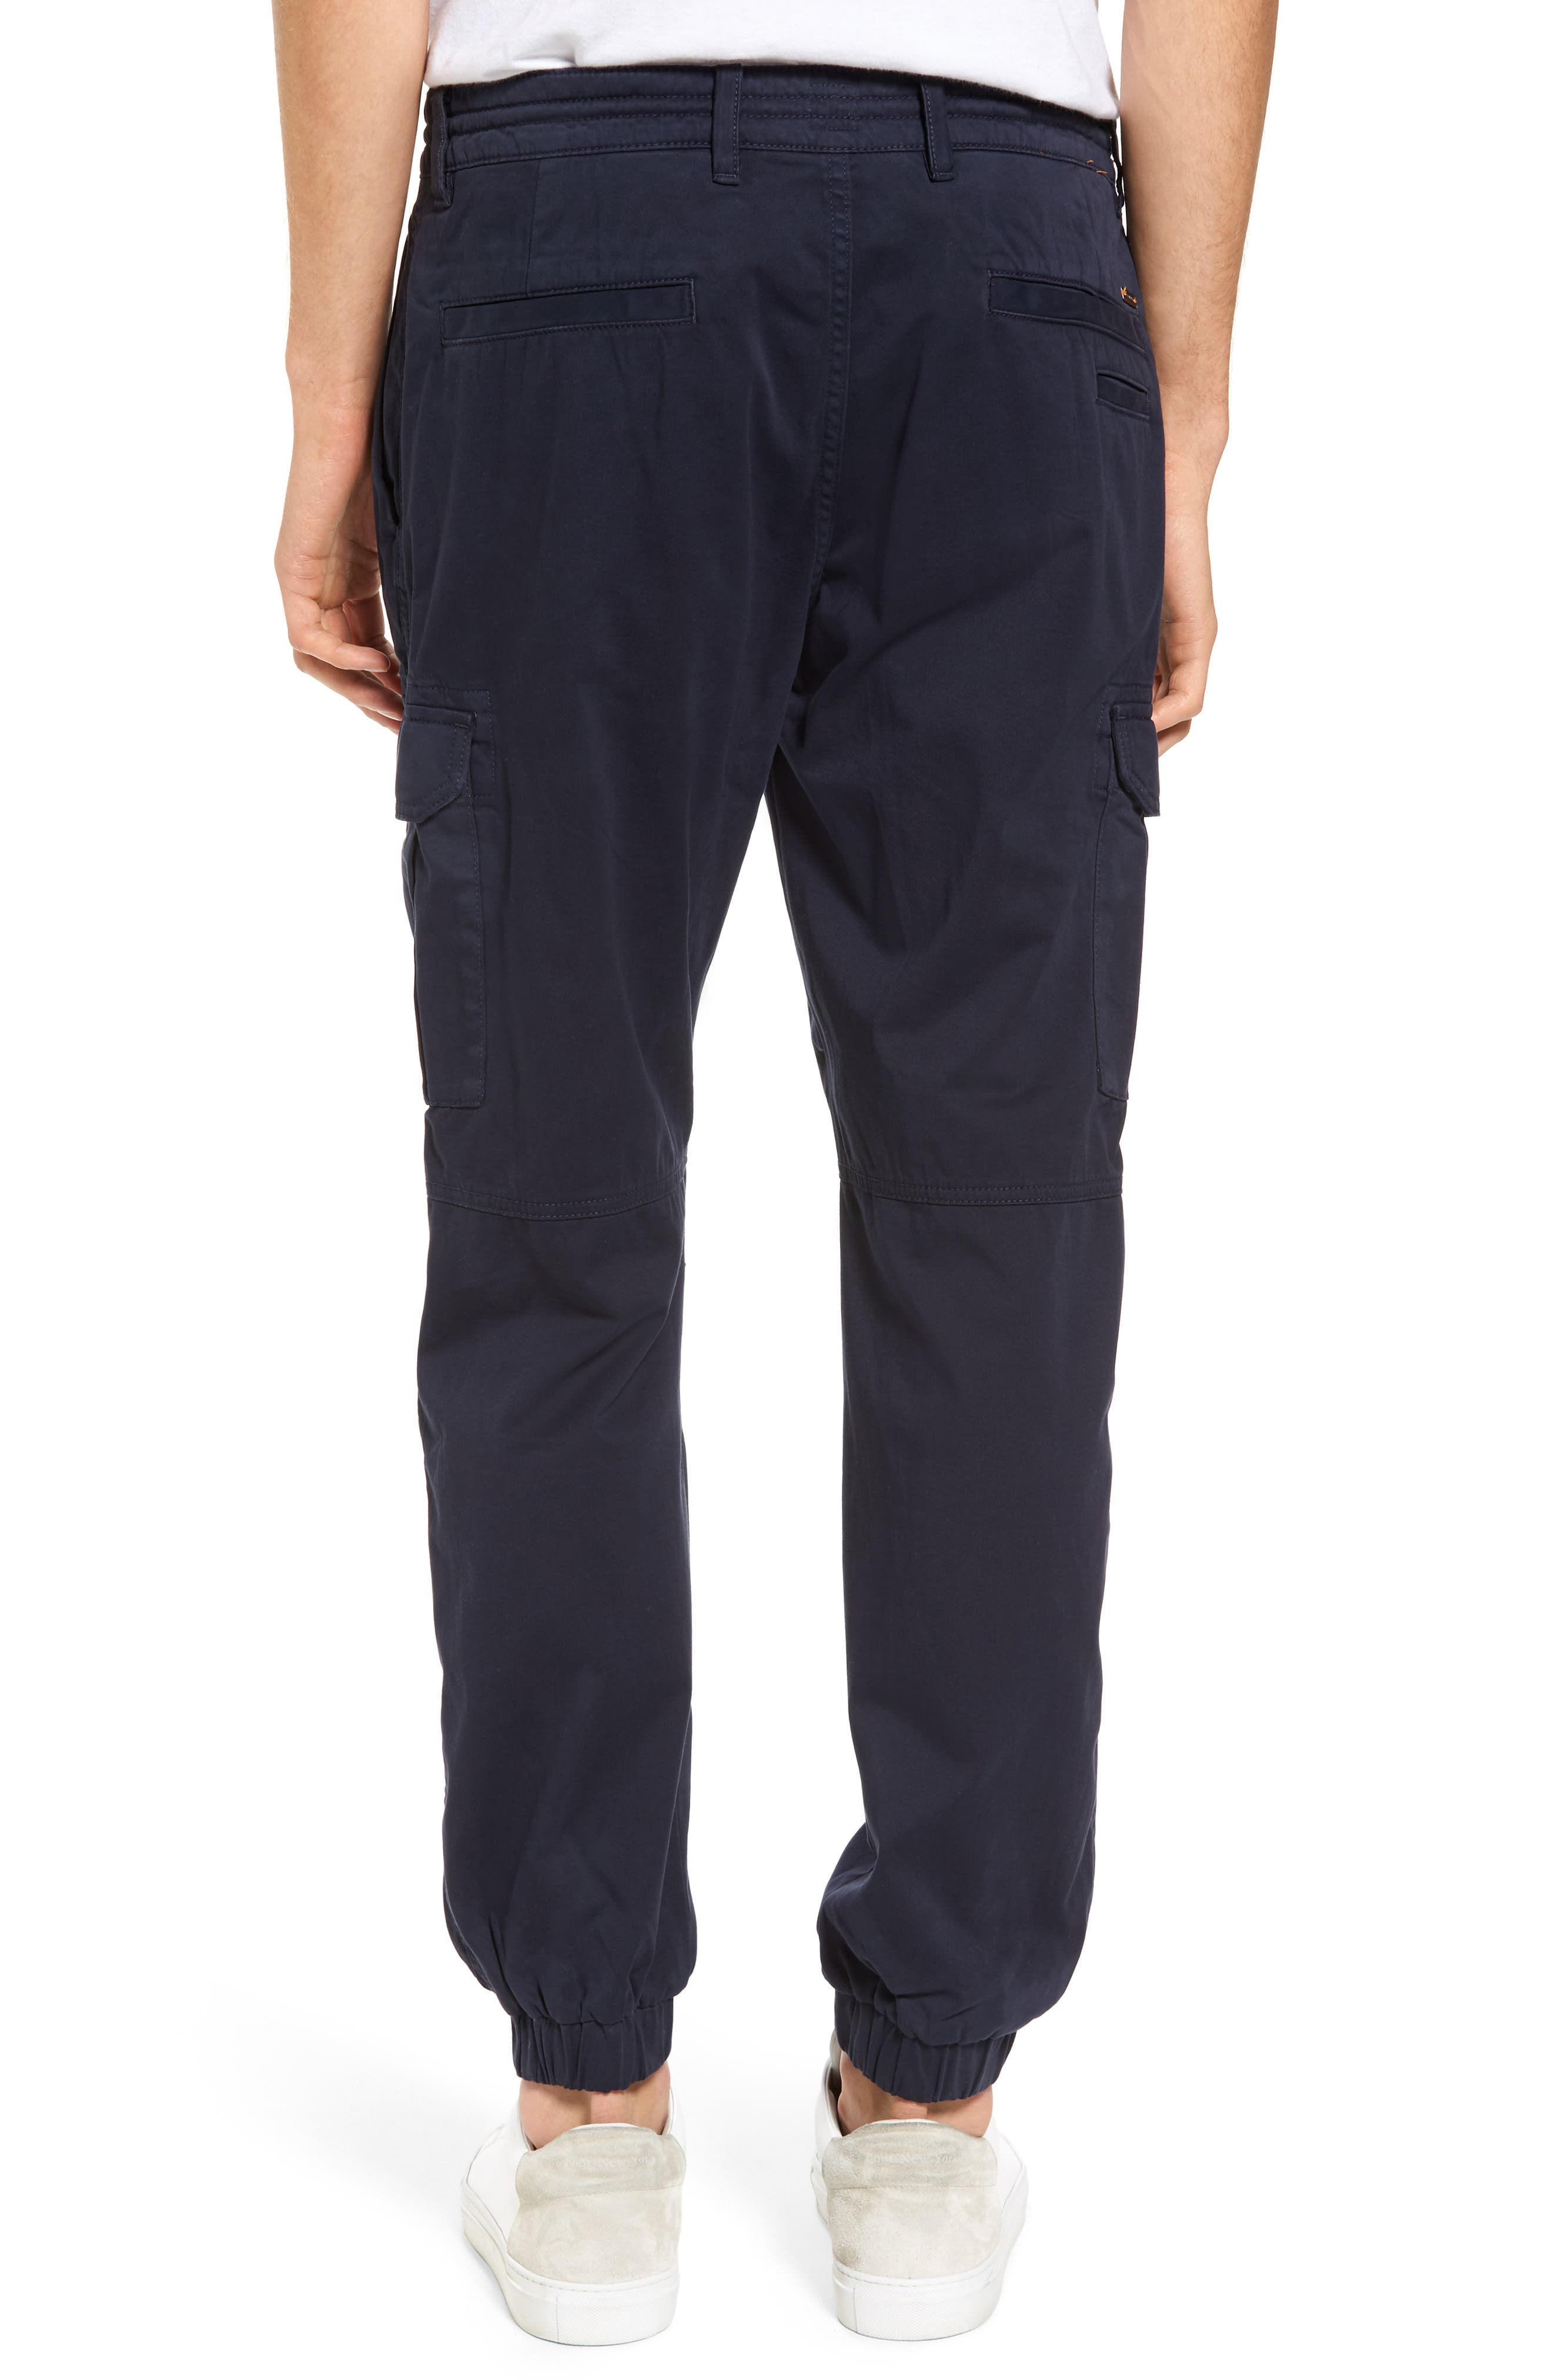 Shay 2 Cargo Pants,                             Alternate thumbnail 2, color,                             404